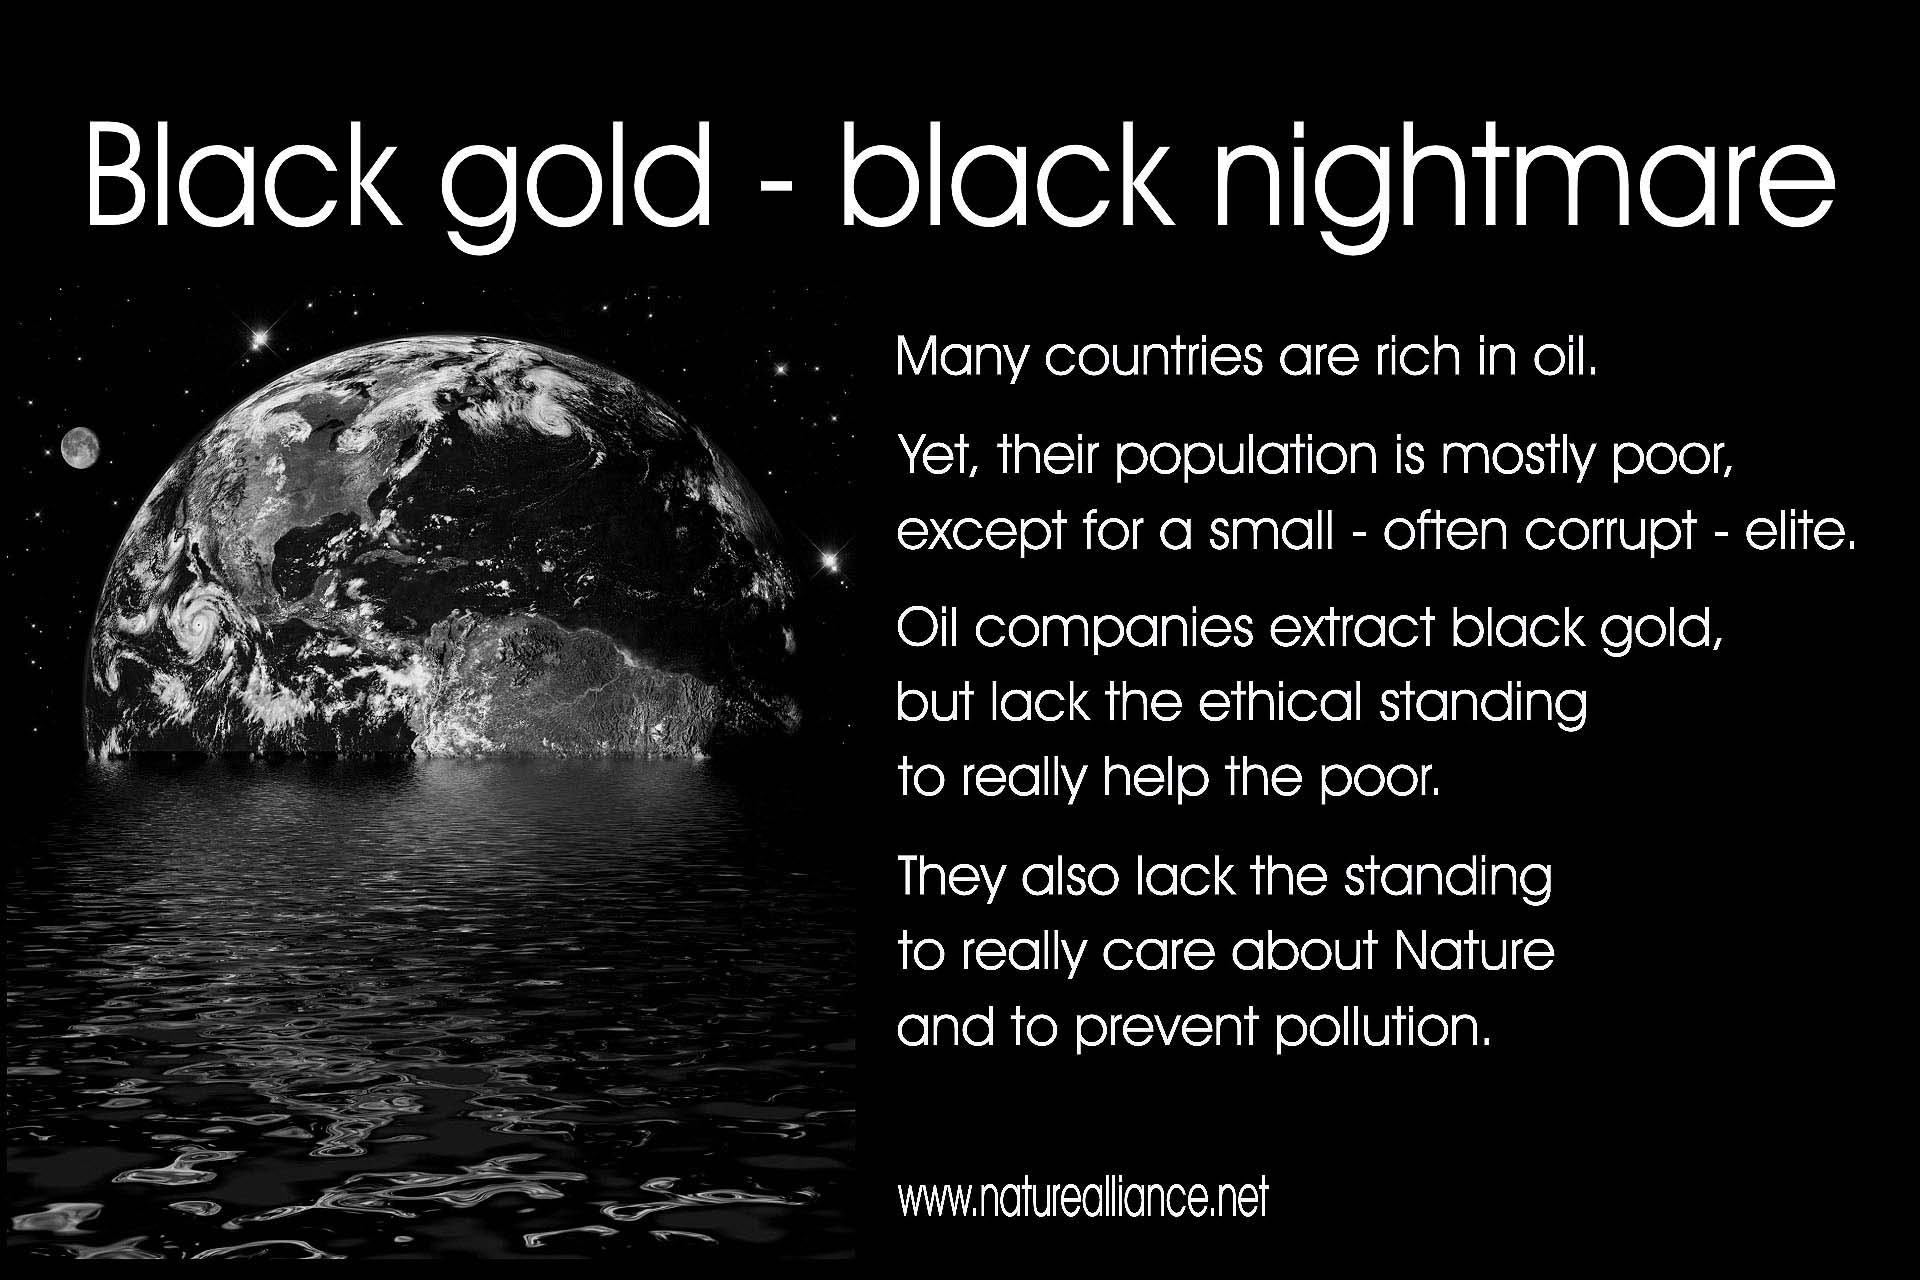 Black gold - black nightmare